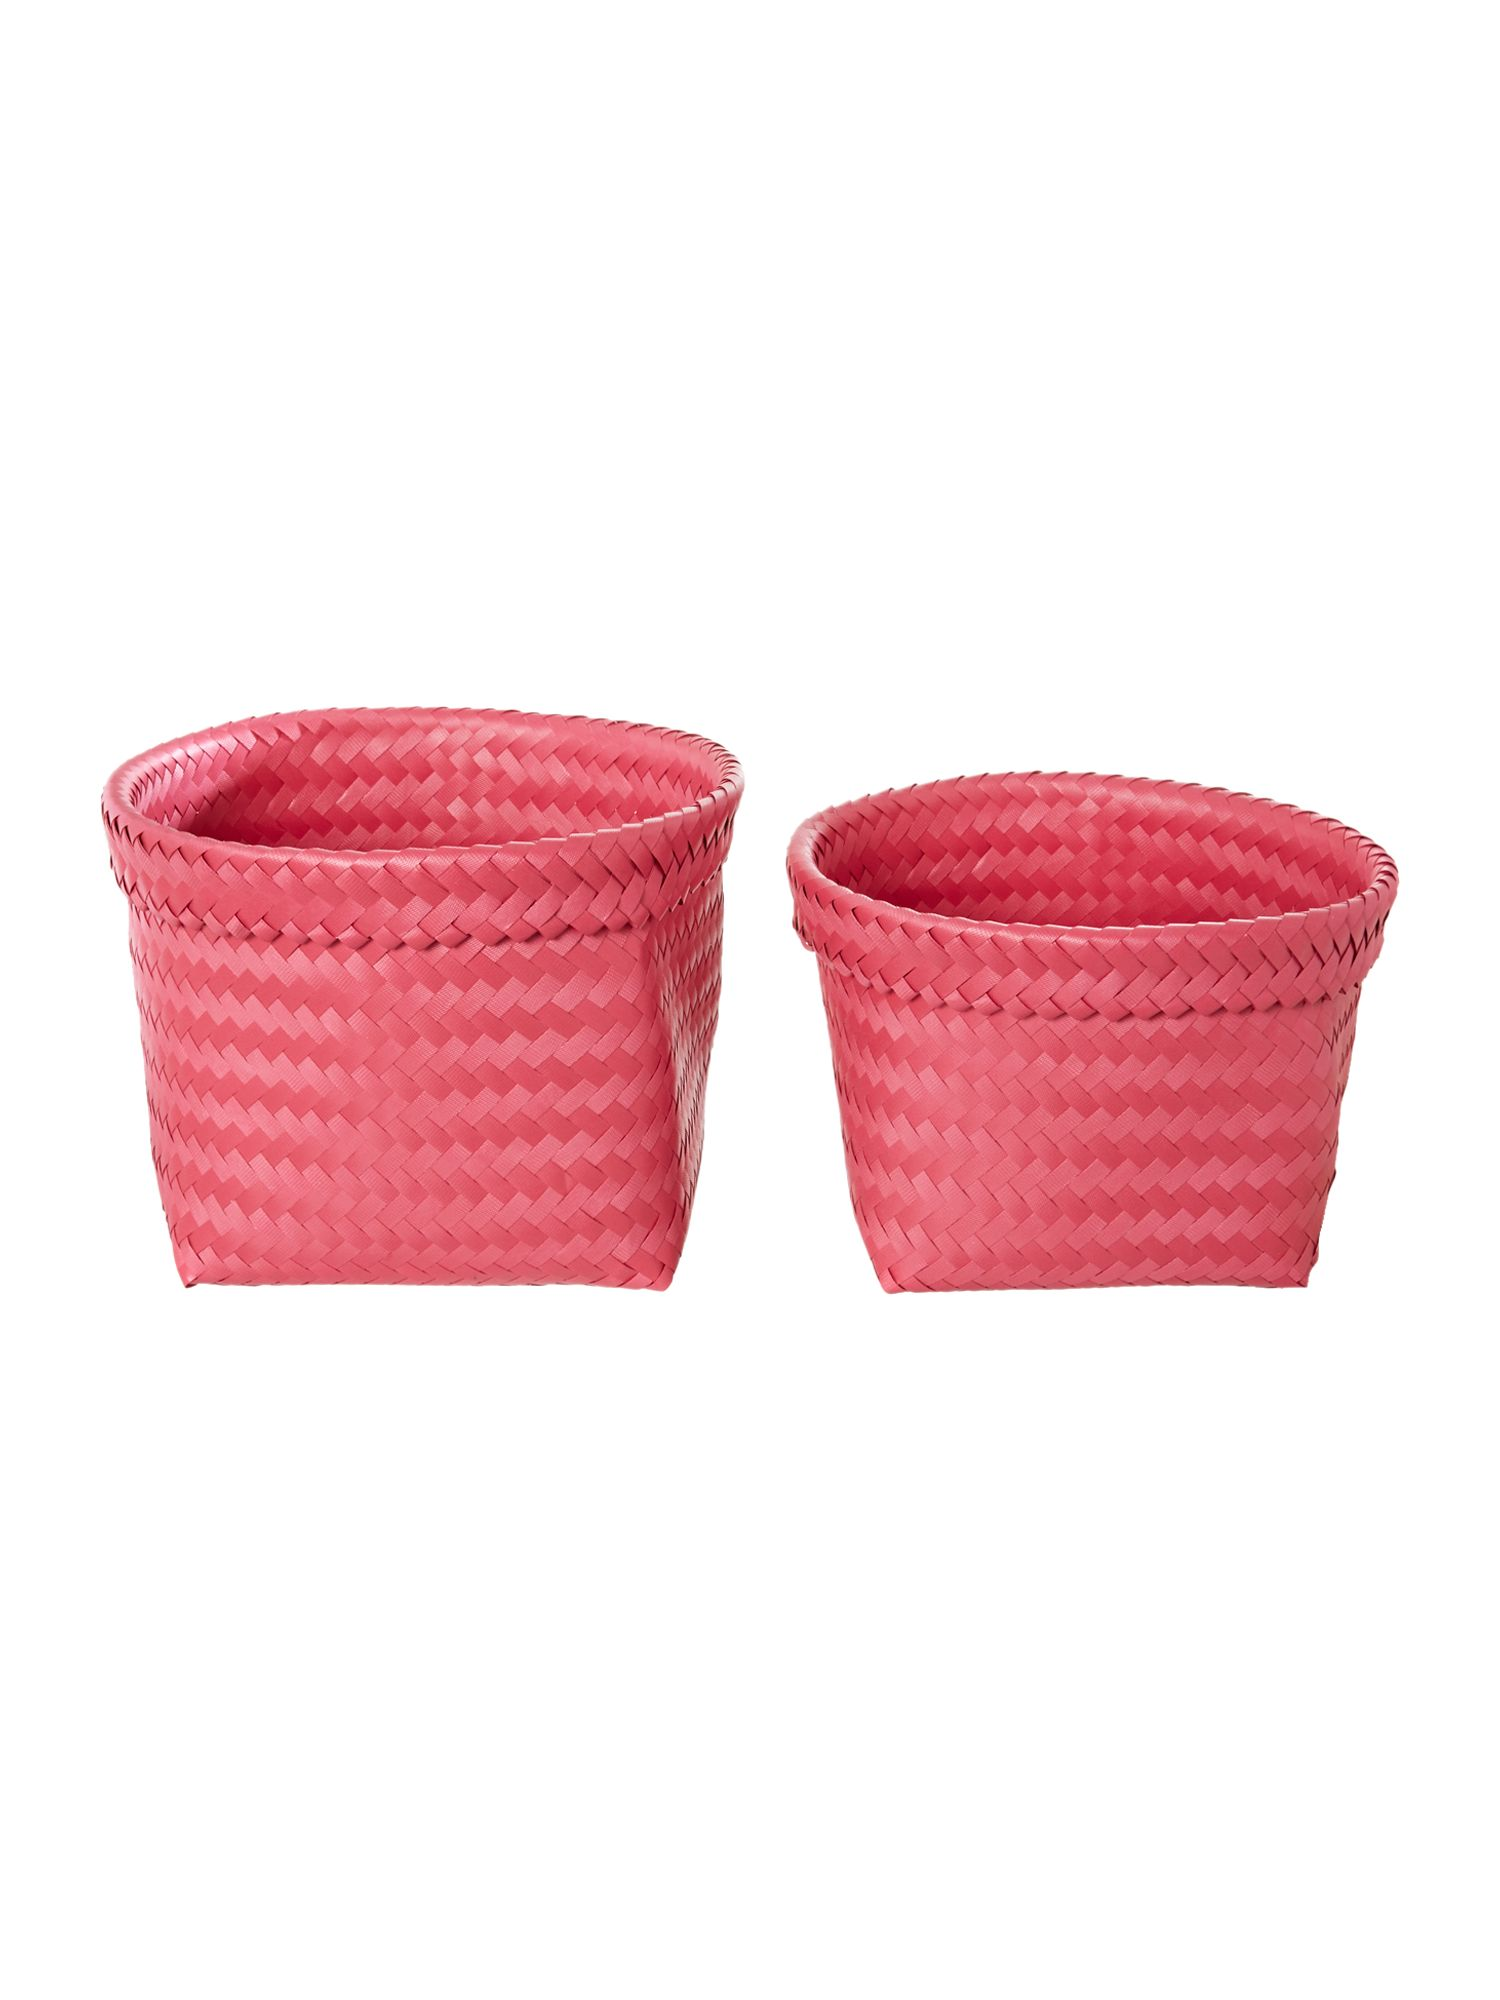 Set of 2 woven baskets pink